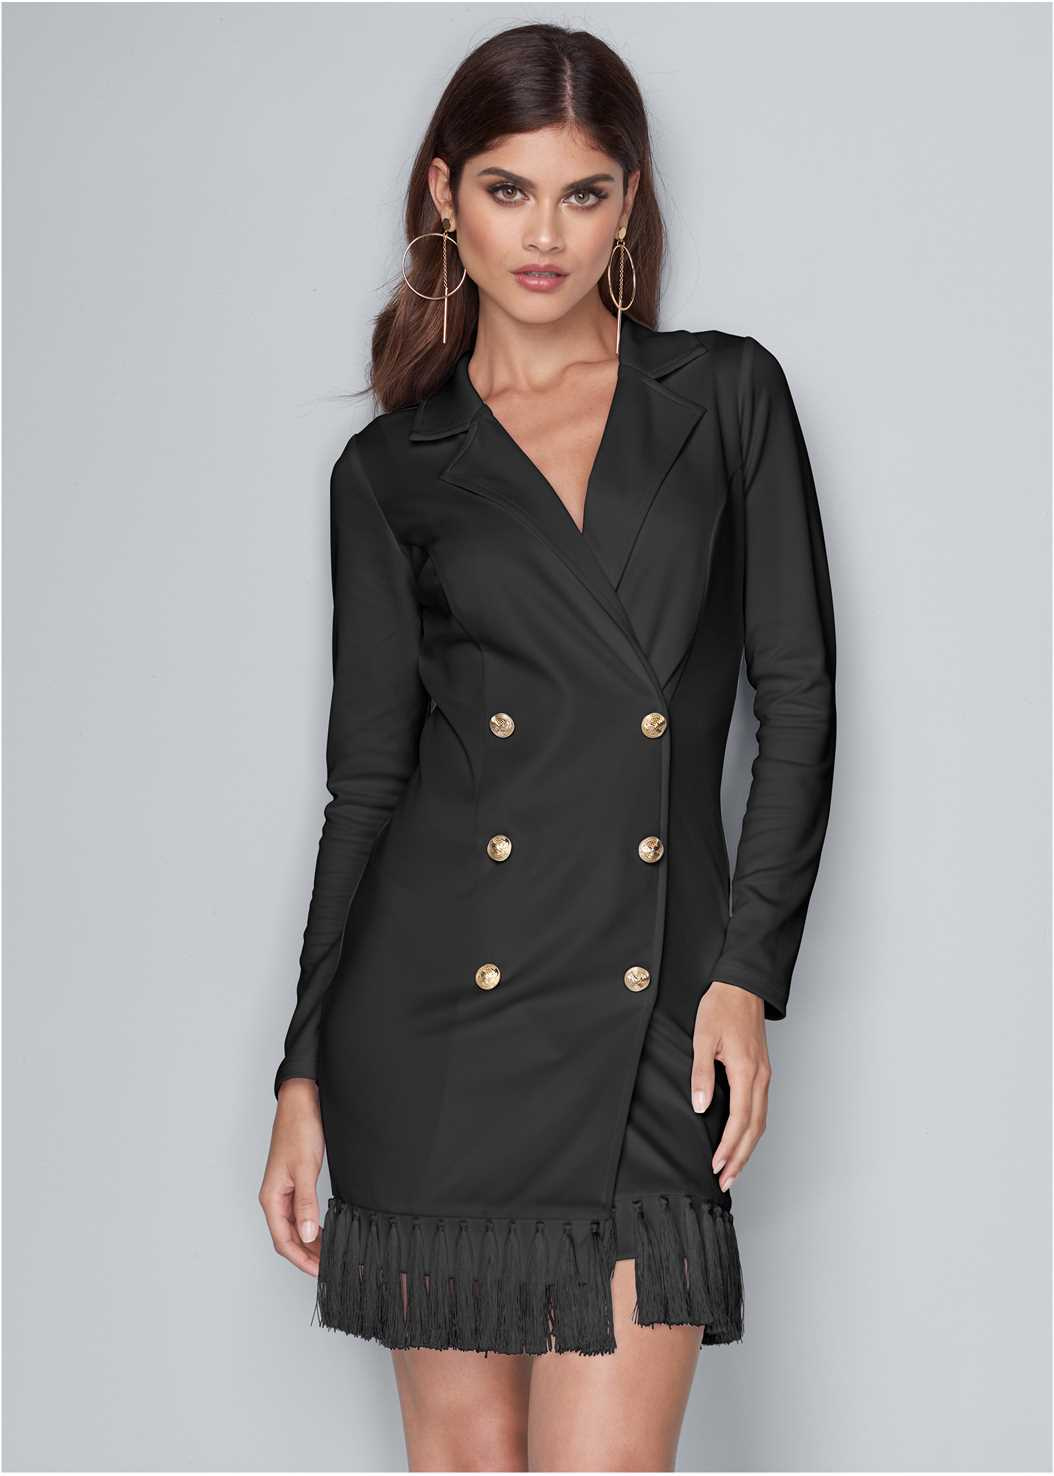 Tassel Coat Dress,Confidence Shaping Romper,Embellished Lucite Heel